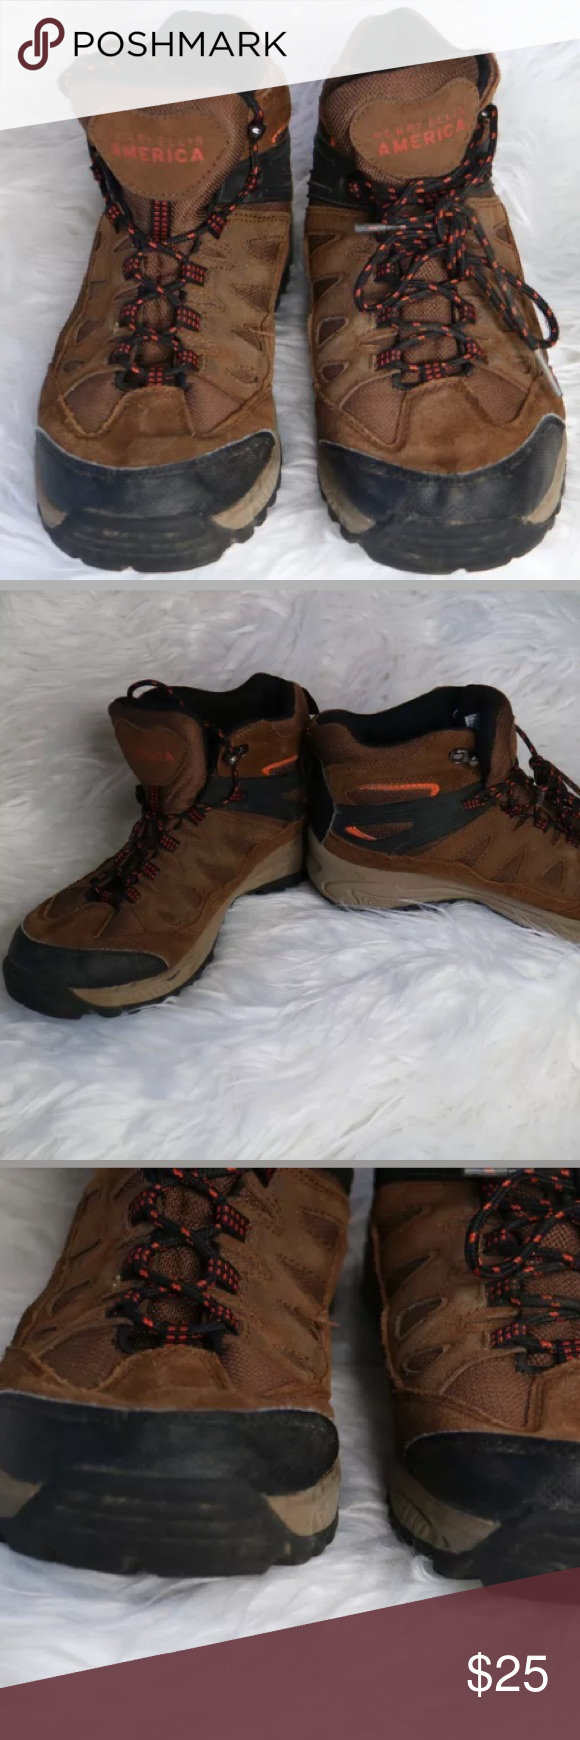 Boys PERRY ELLIS AMERICA Leather Hiking Boots Boys PERRY ELLIS AMERICA Leather Hiking Boots Style Name: Carter GP Youth Size: US 6 Leather Upper Brown with Orange Accents  Good Condition Washed to the best of my ability Odor free Has some wear as shown in pictures  SMOKE FREE HOME Perry Ellis Shoes Boots